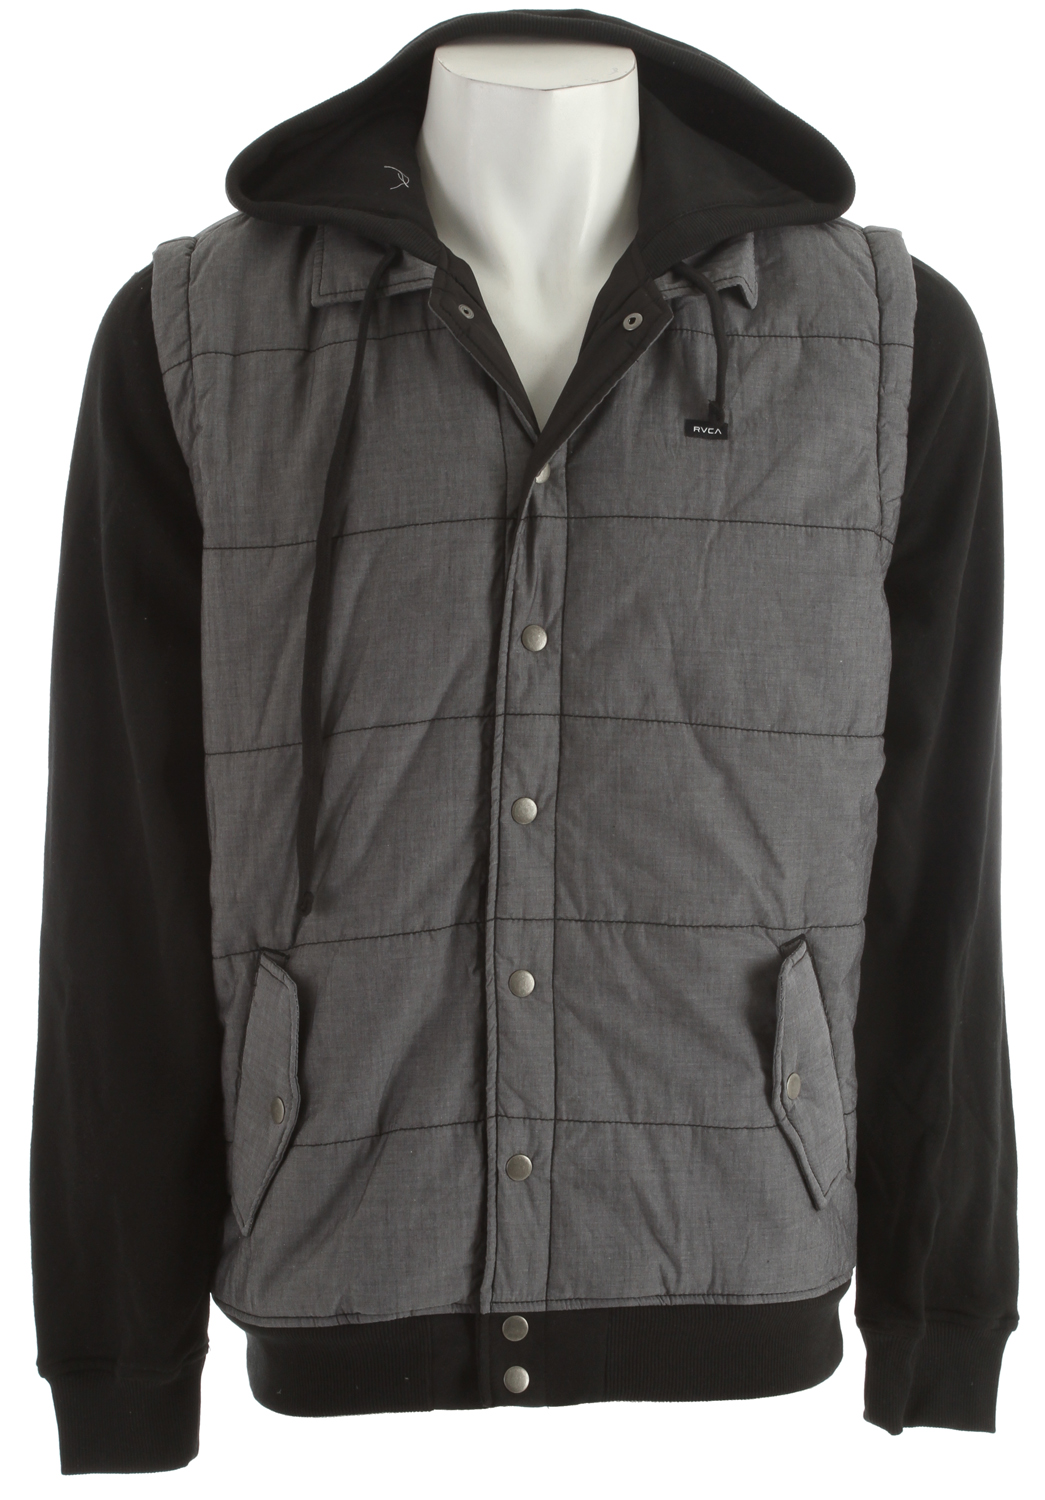 Key Features of the RVCA Puffer Chambray Hoodie: Regular fit Chambray Vest with 60% cotton/40% polyester peached fleece Long sleeve hooded jacket with drawcord at hood opening Nylon at body and fleece at hood and sleeves Snap down button closure at center front placket Ribbing at hood opening, cuffs and waistband Welt pocket at front with flaps and snap button closure RVCA solo label at left chest - $74.00